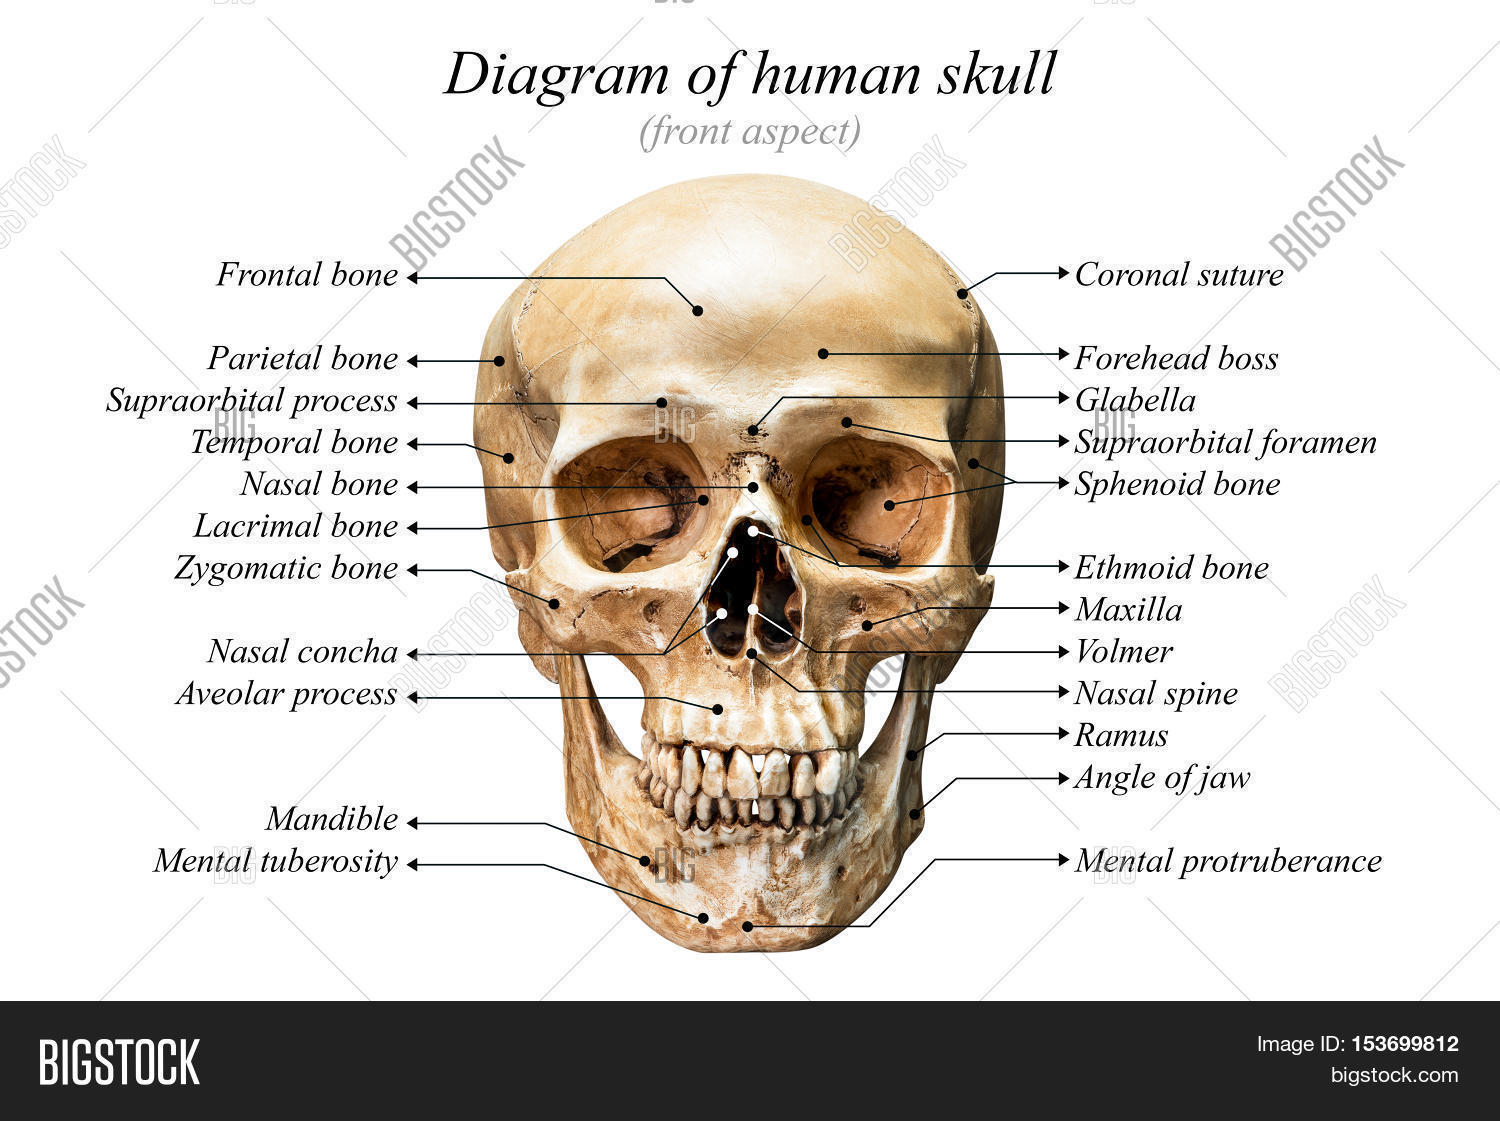 Front Aspect Human Image Photo Free Trial Bigstock